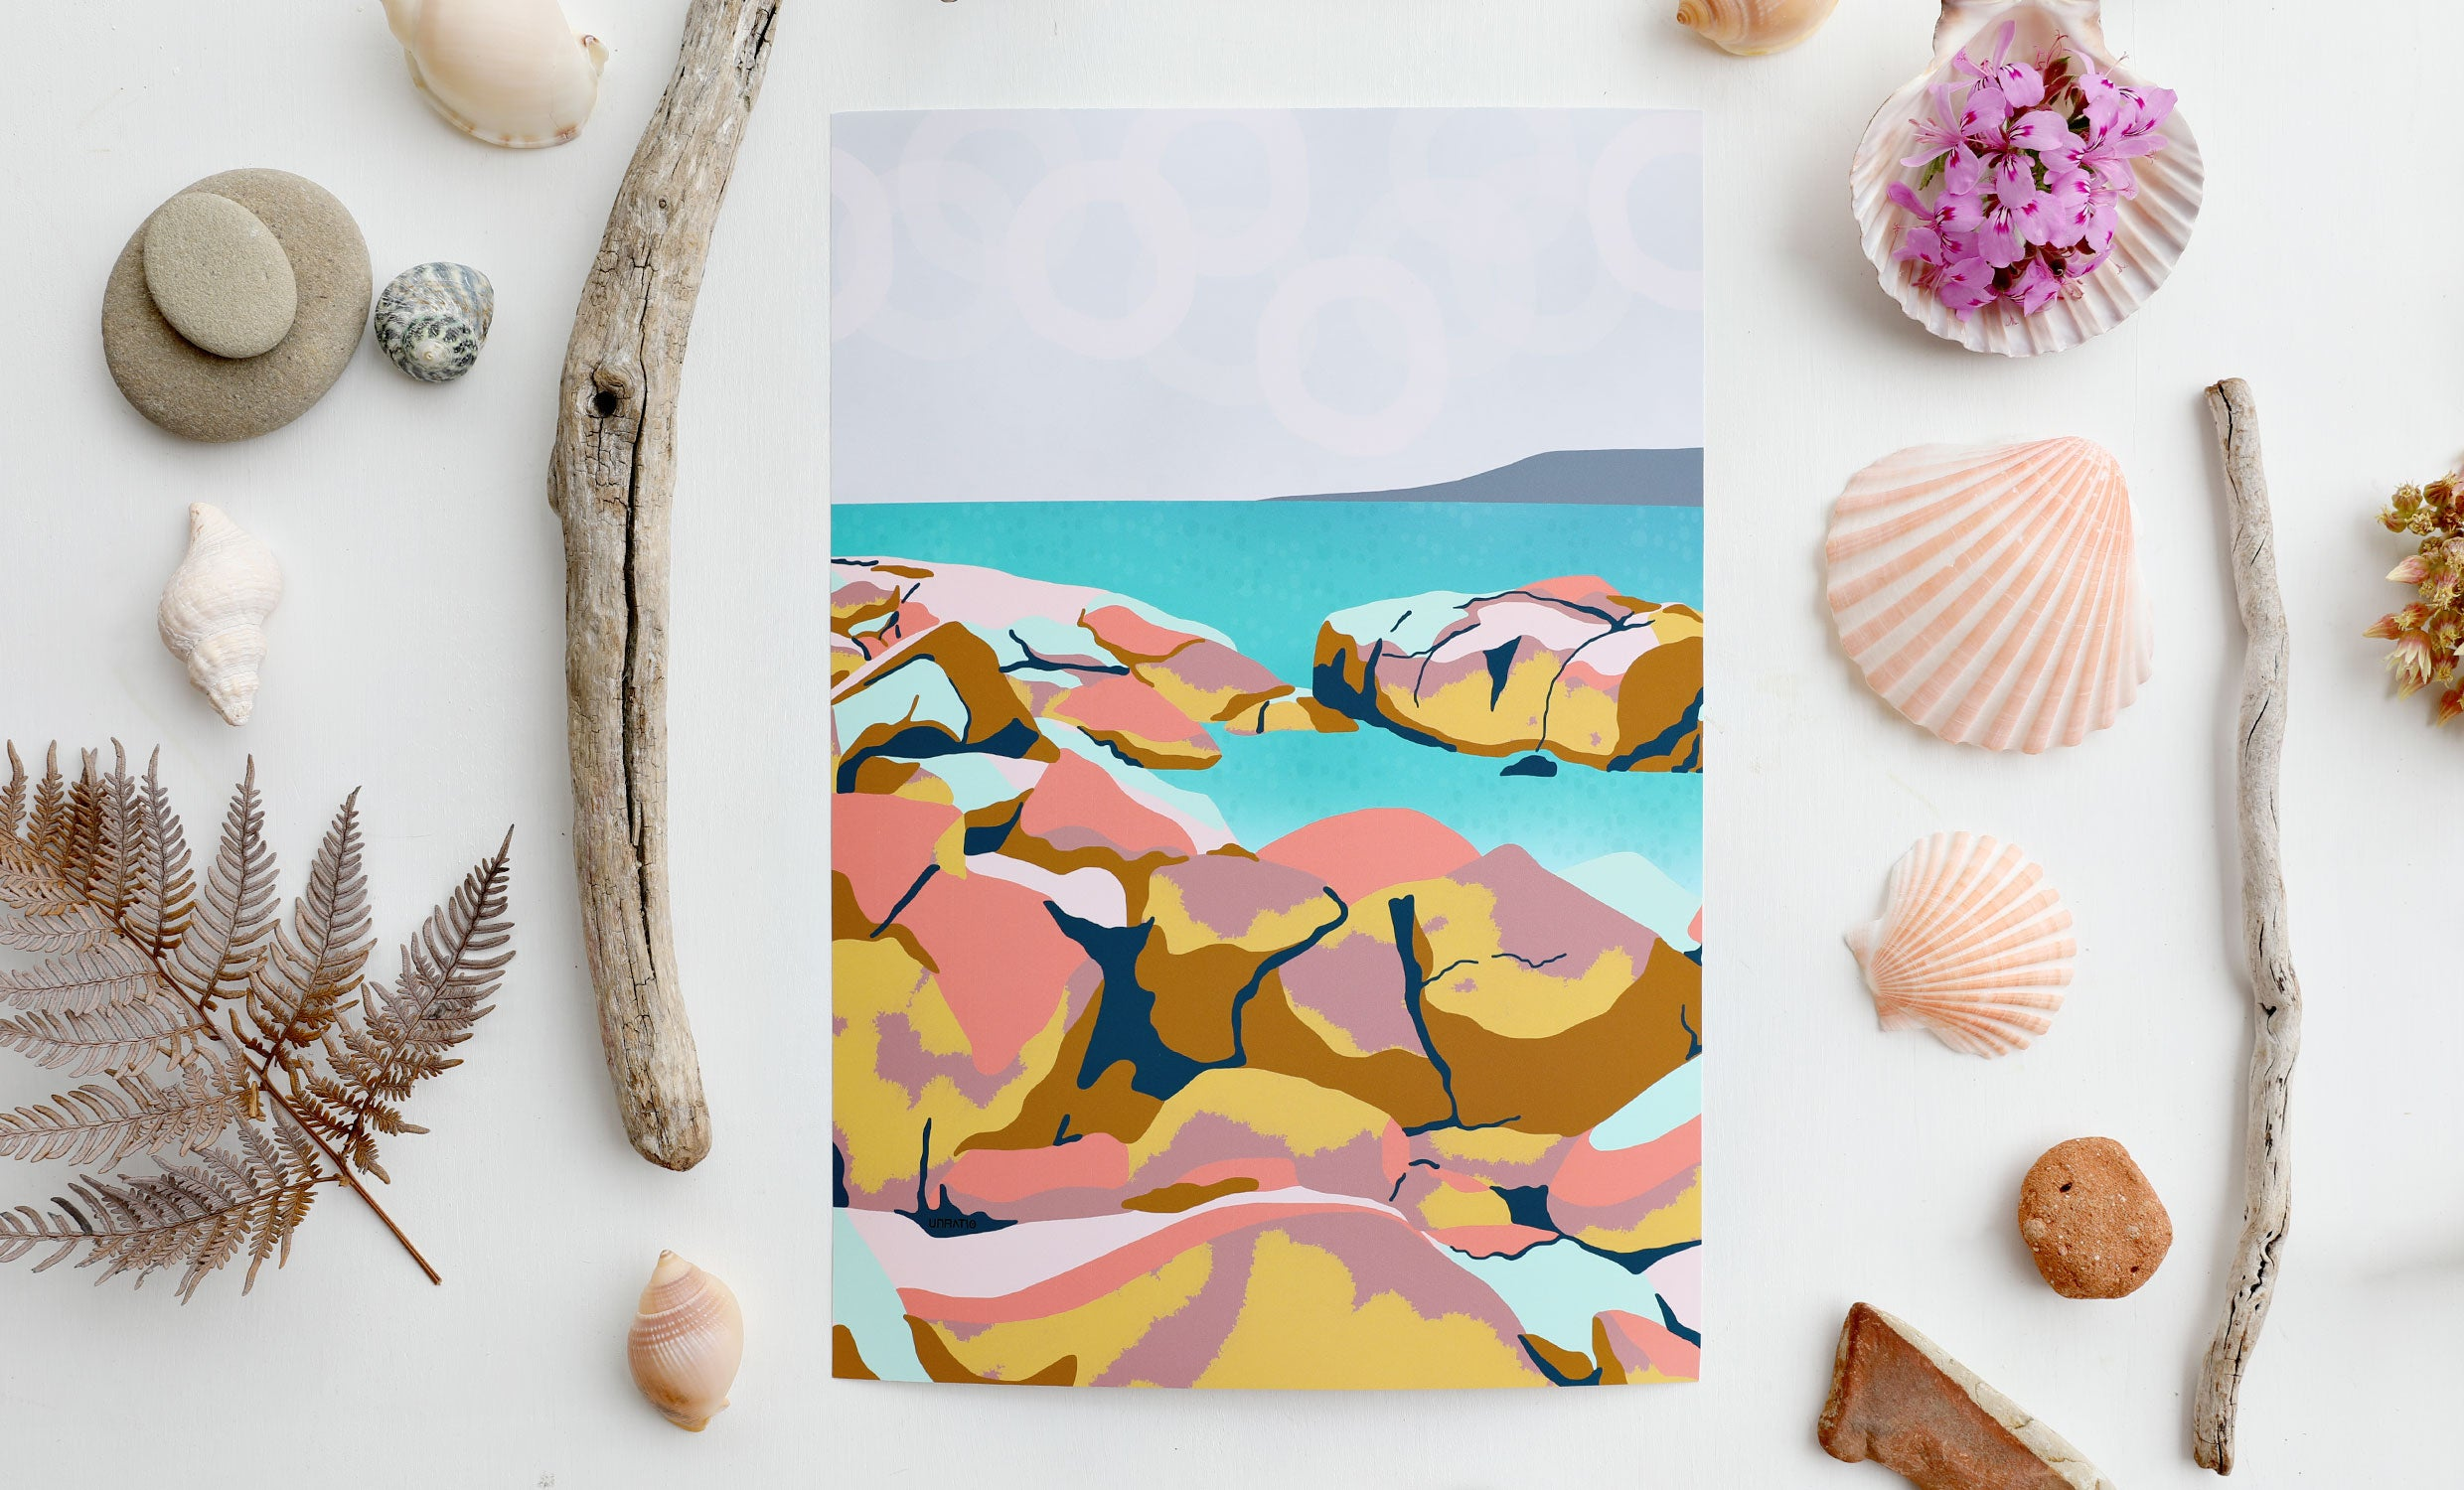 Abstract colourful beach illustration art print with a seashell nautical themed natural flatly